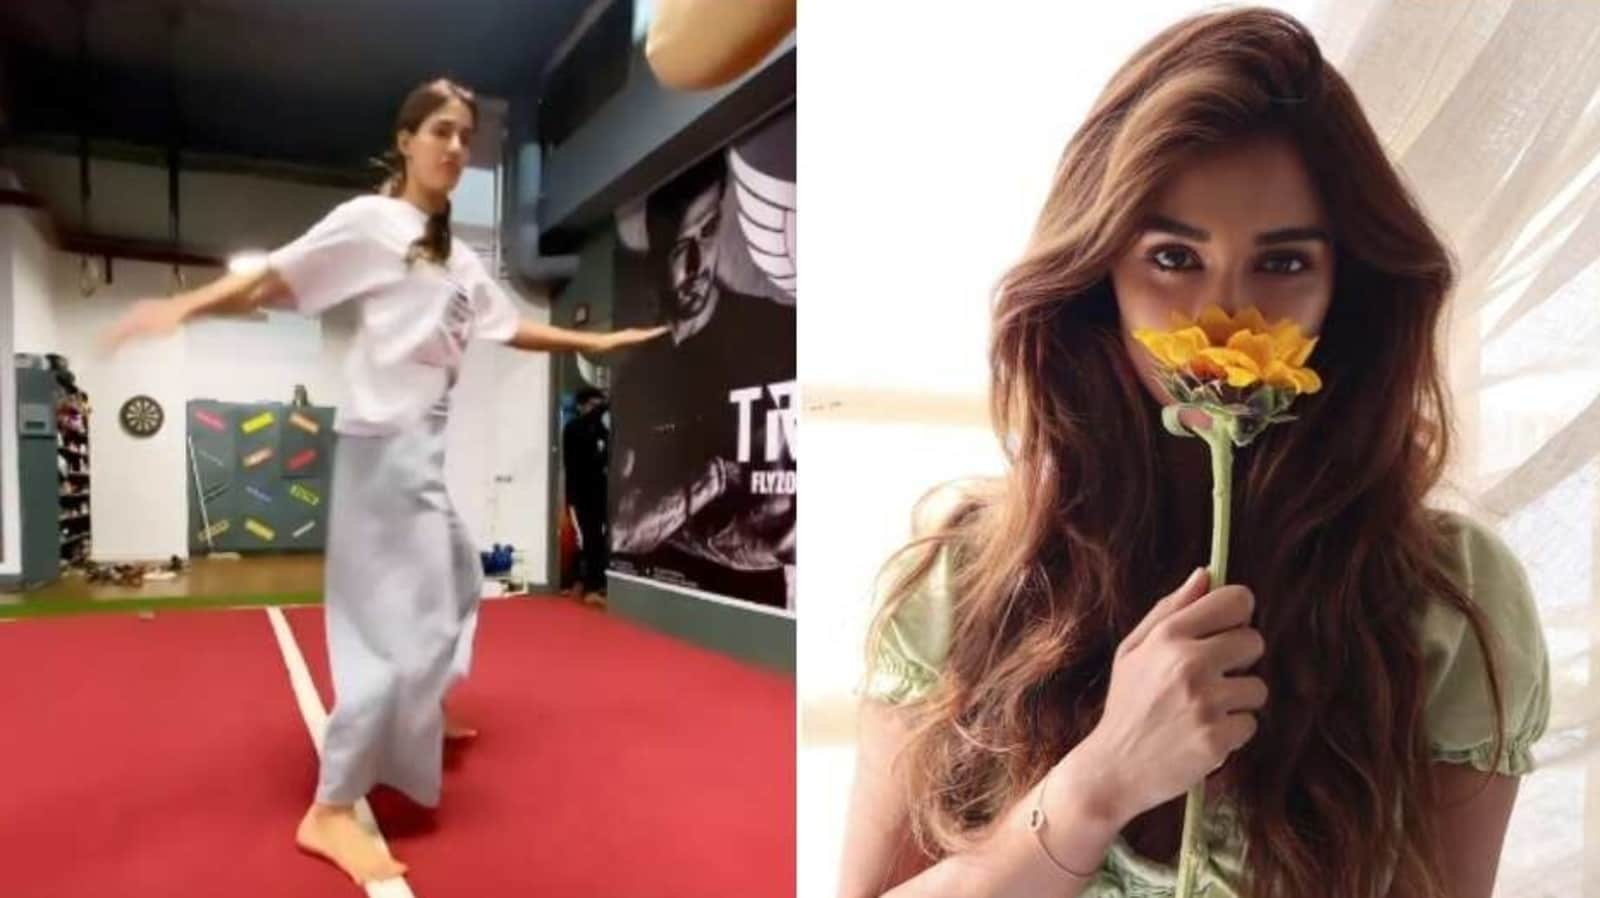 International Women's Day: Disha Patani shows how strong she is in fitness clip - Hindustan Times